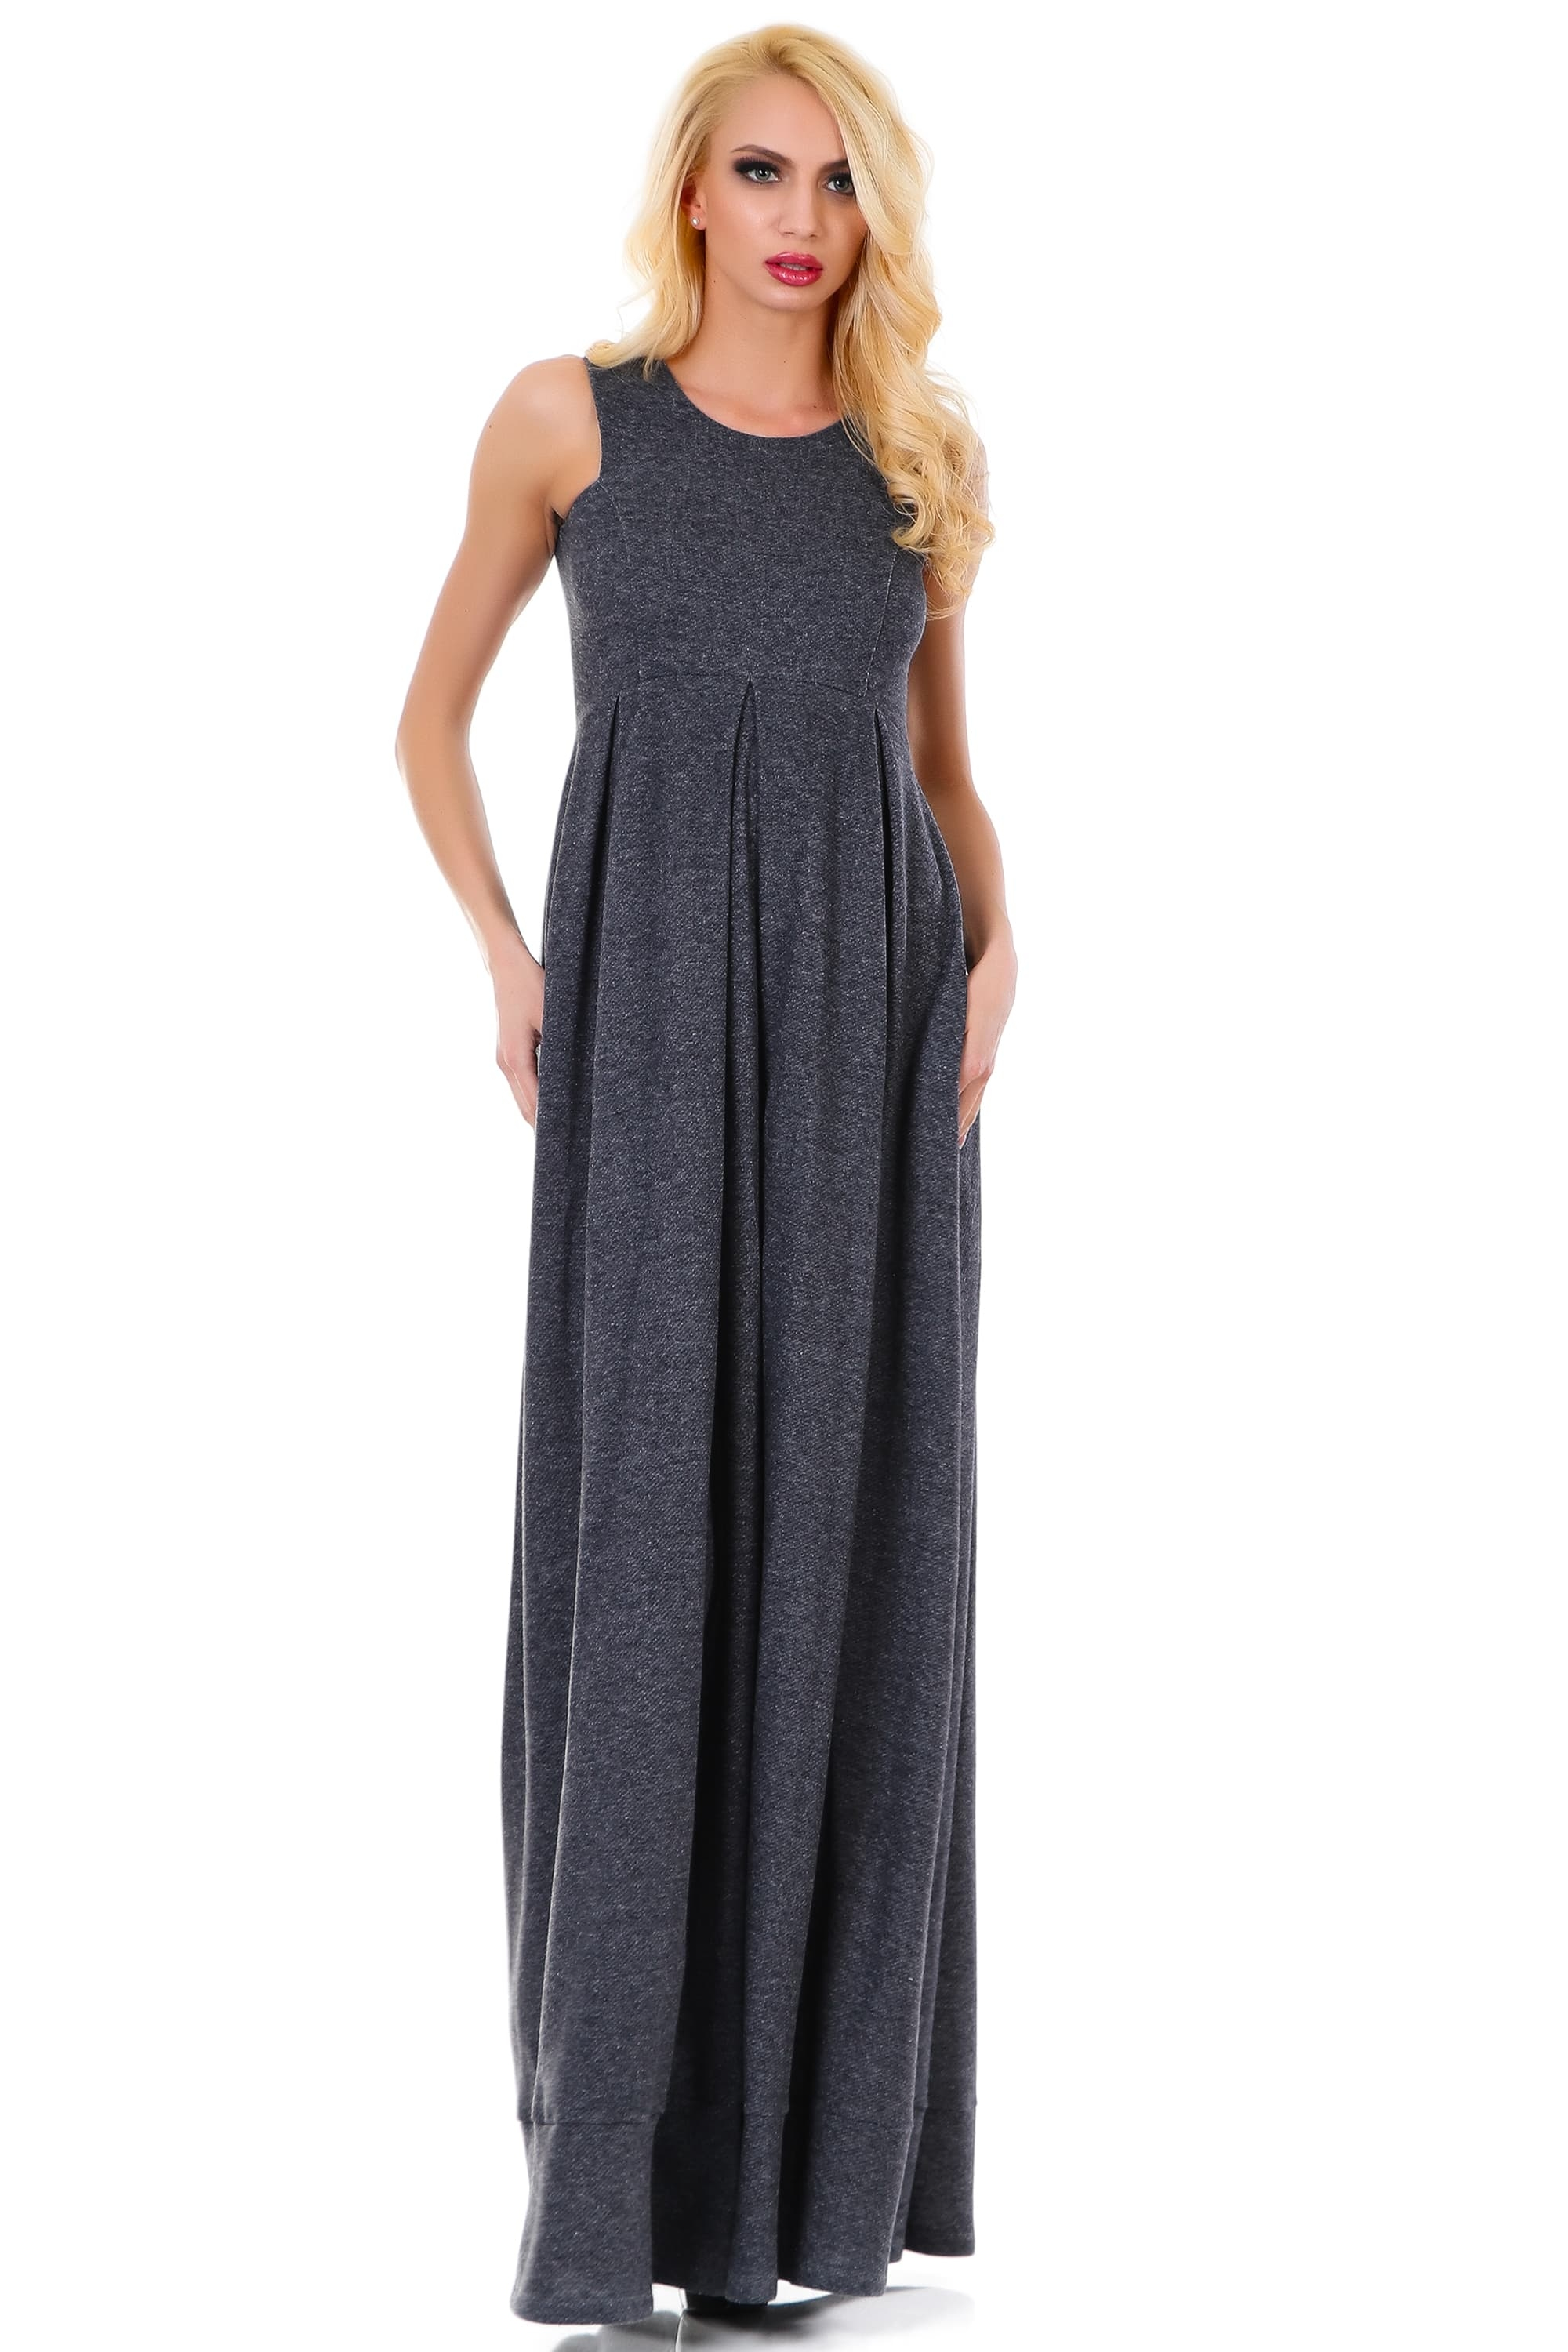 Casual dresses online at the best price - Caramella Fashion